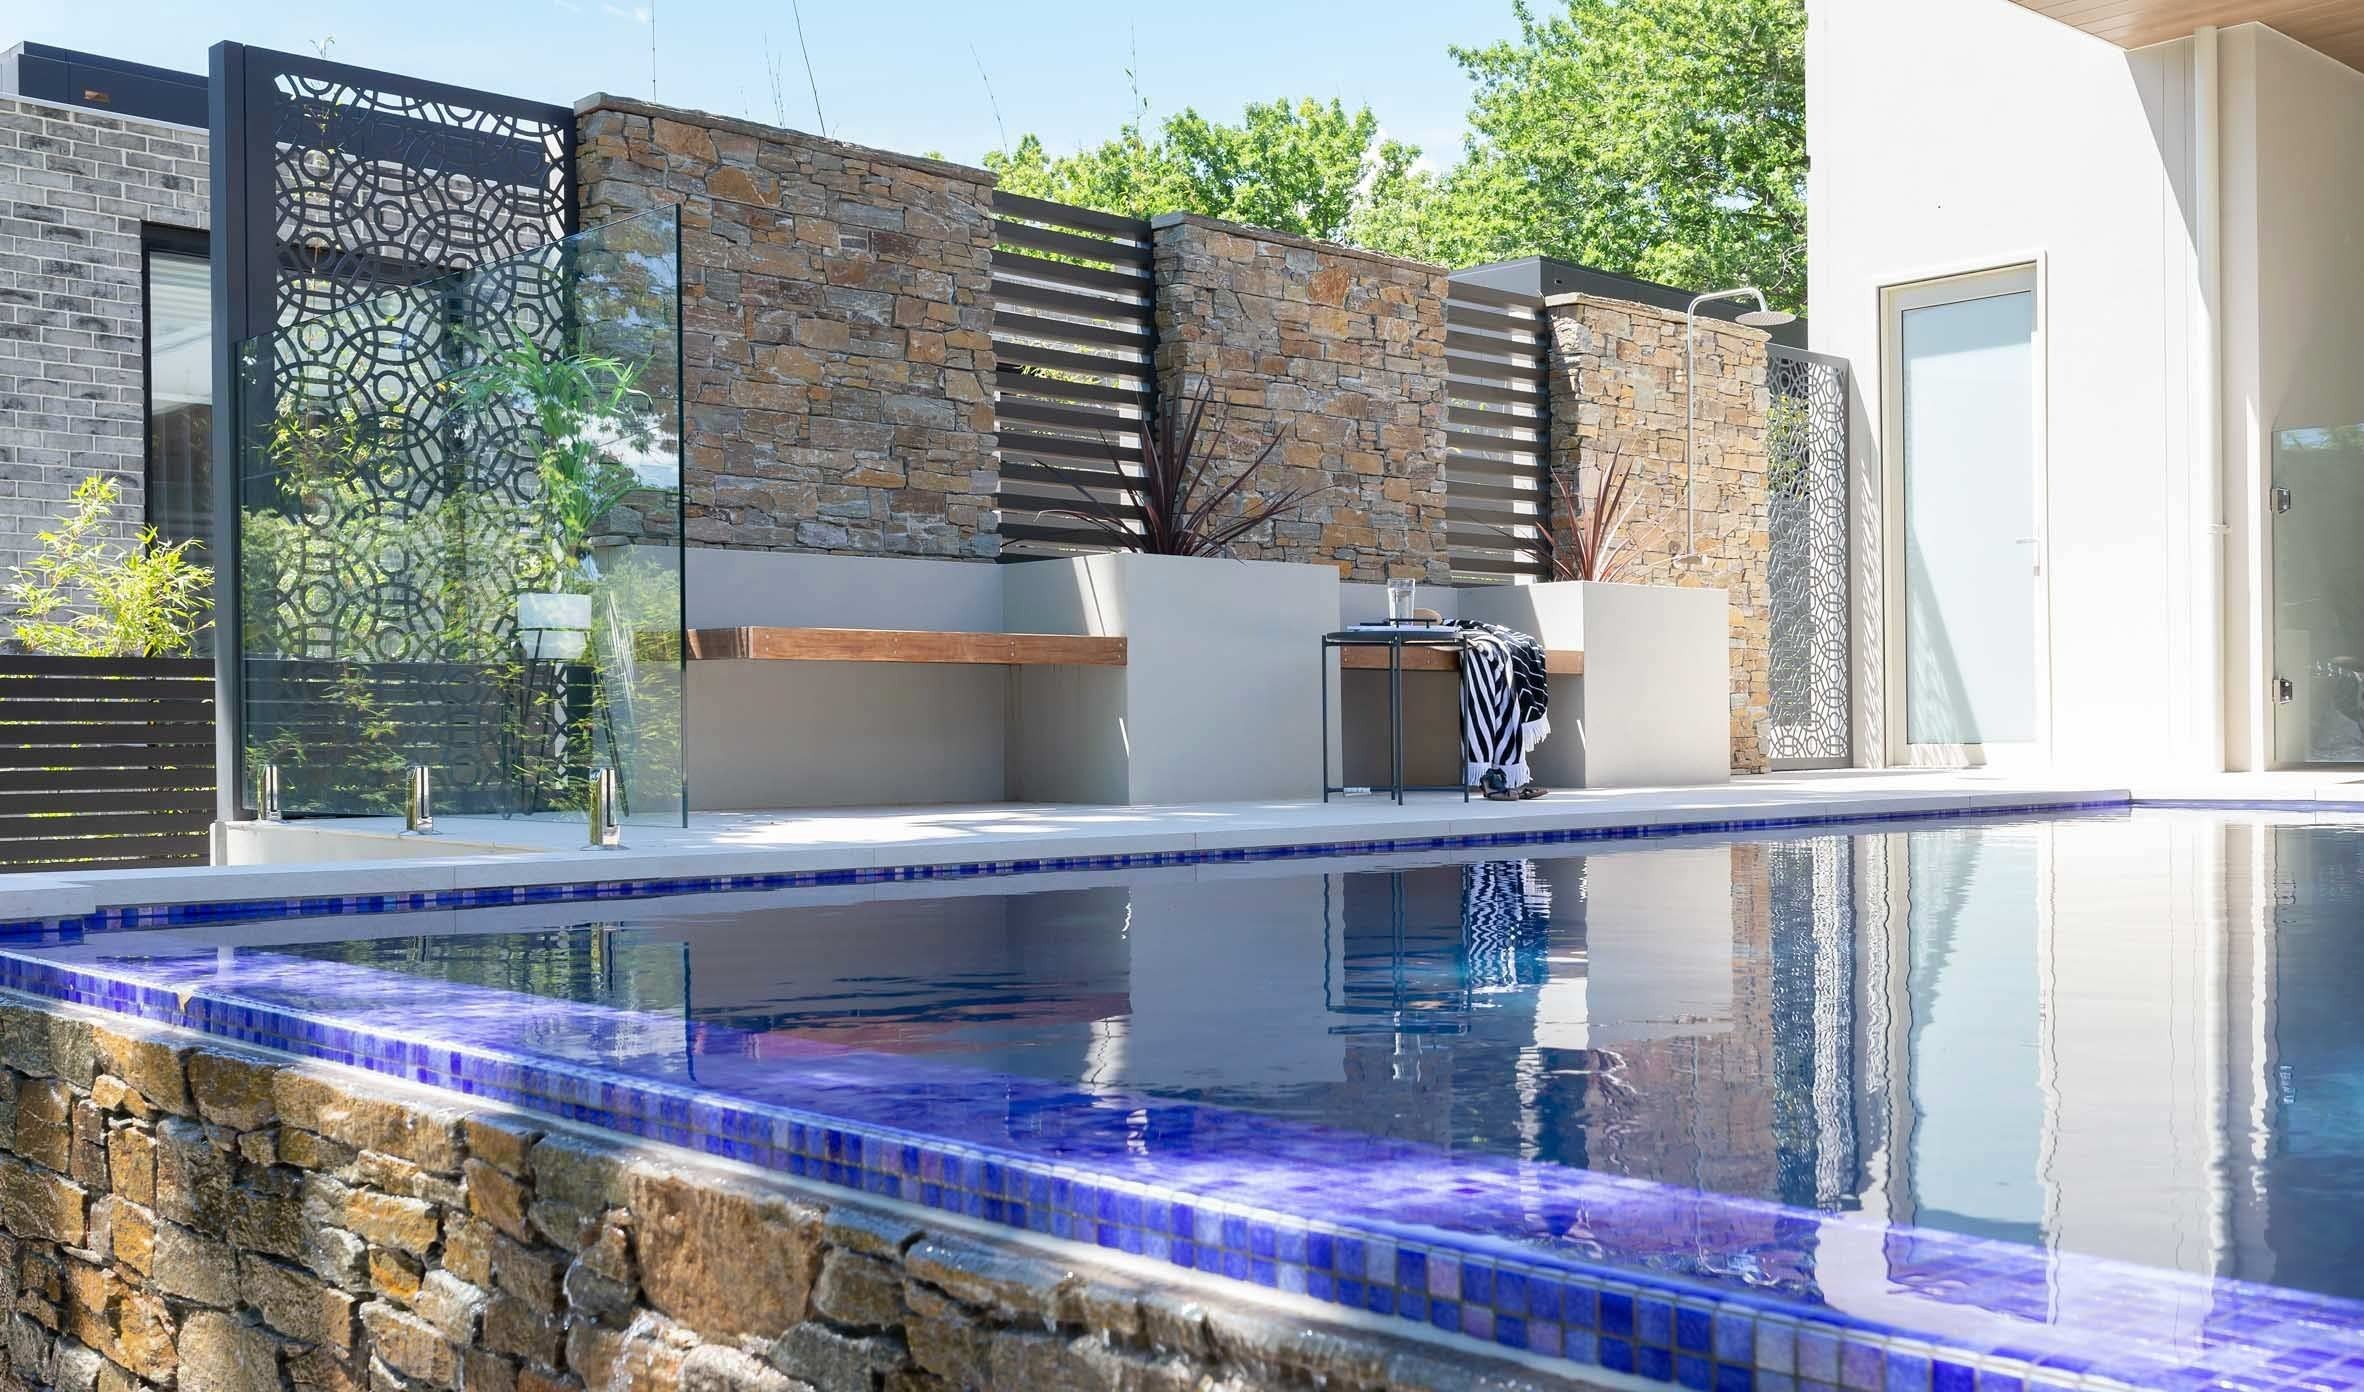 Wall-Cladding-and-Stacked-Stones Thumbnails wall-cladding-and-stacked-stones-33